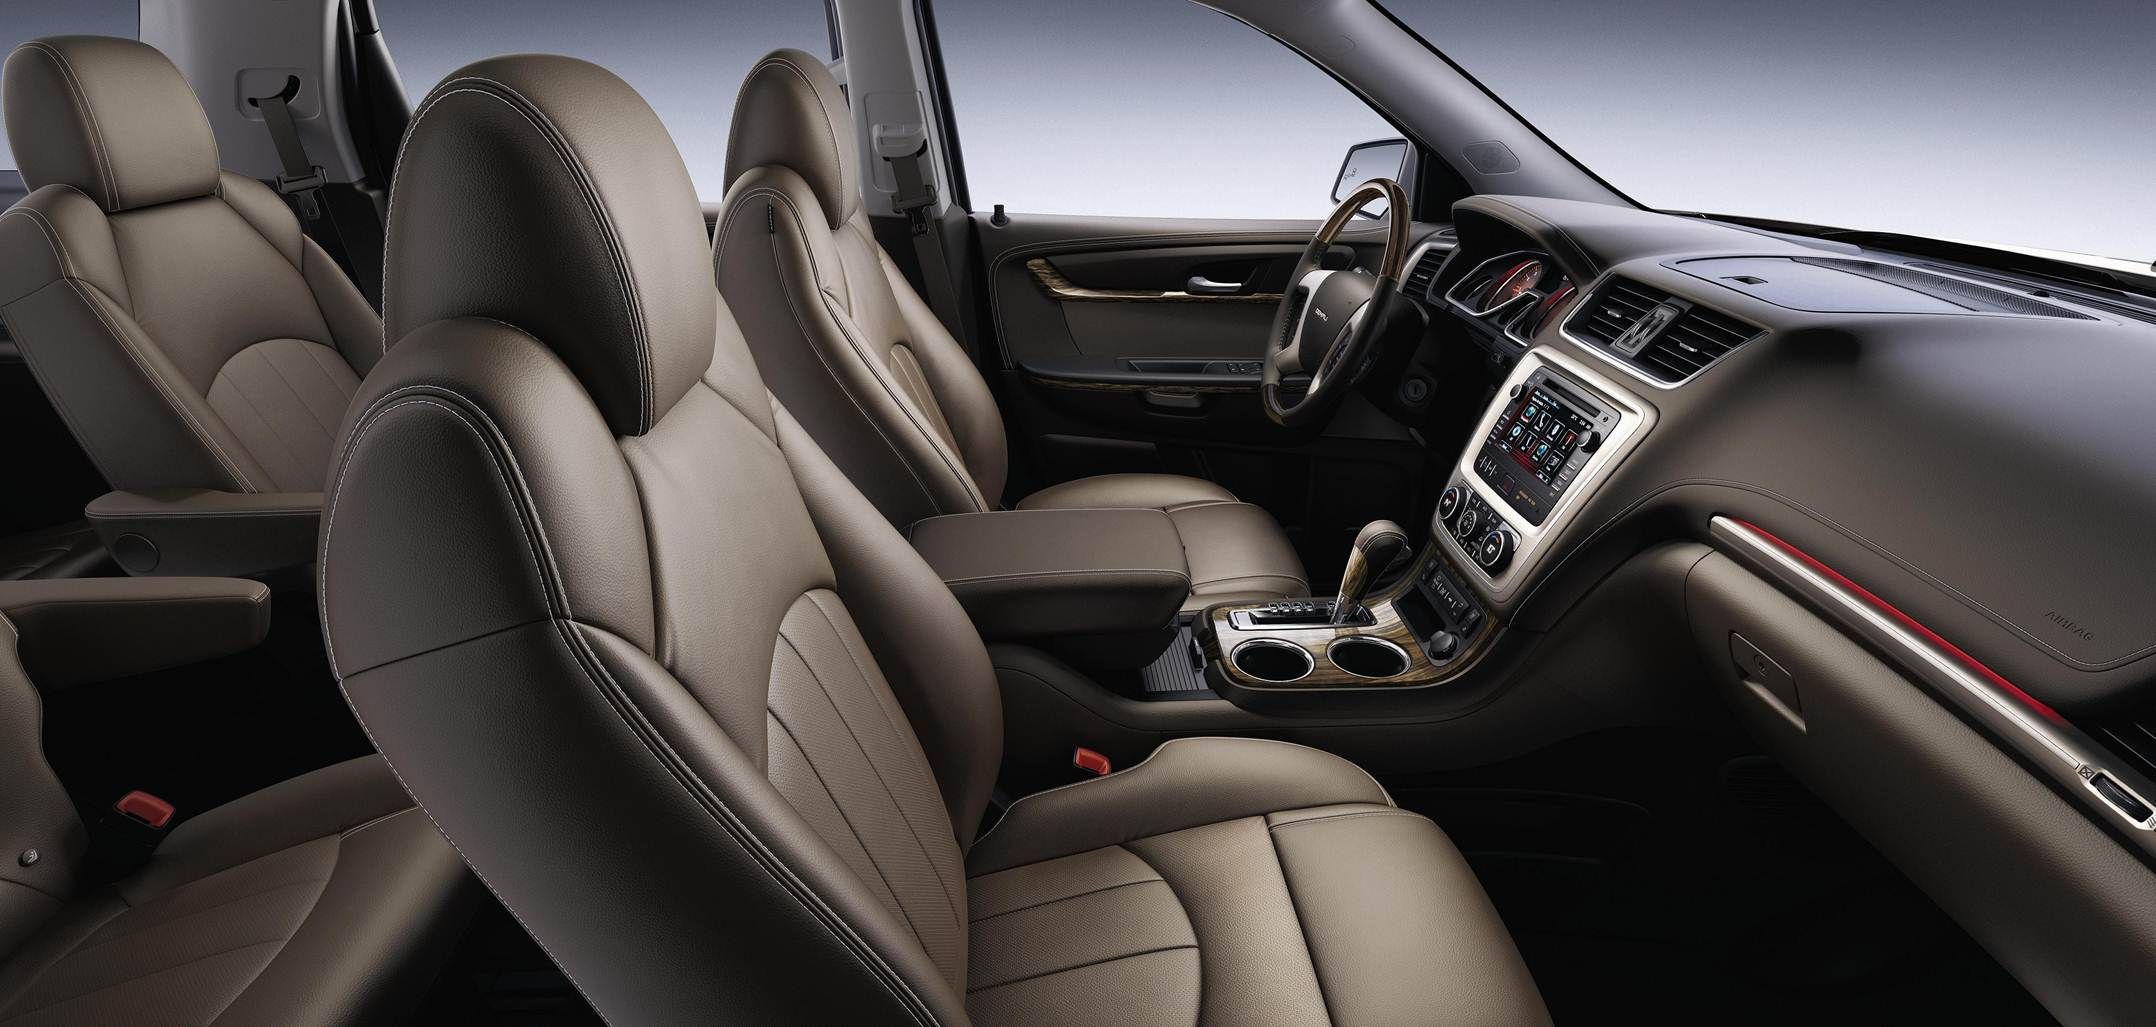 Gmc Acadia Denali 2013 Interior With Images Gmc Vehicles